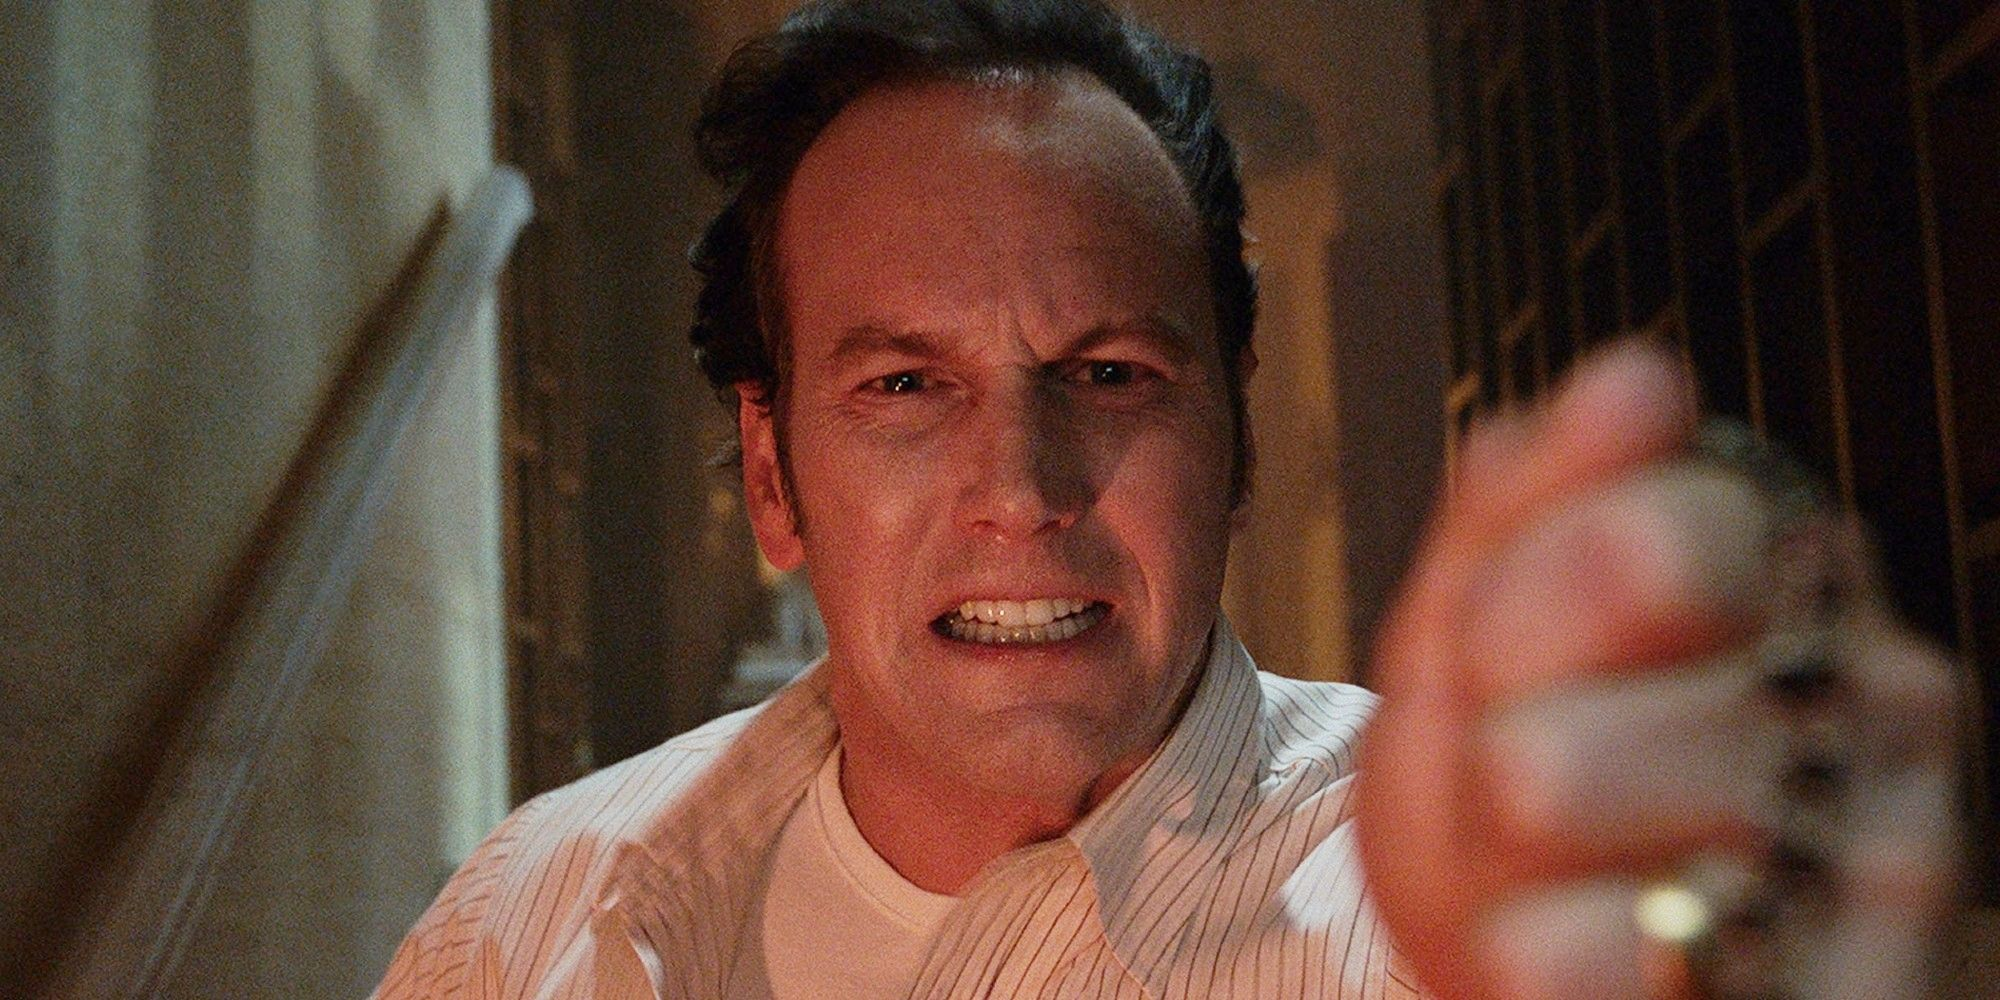 The Conjuring 3 Drops the Haunted House Motif